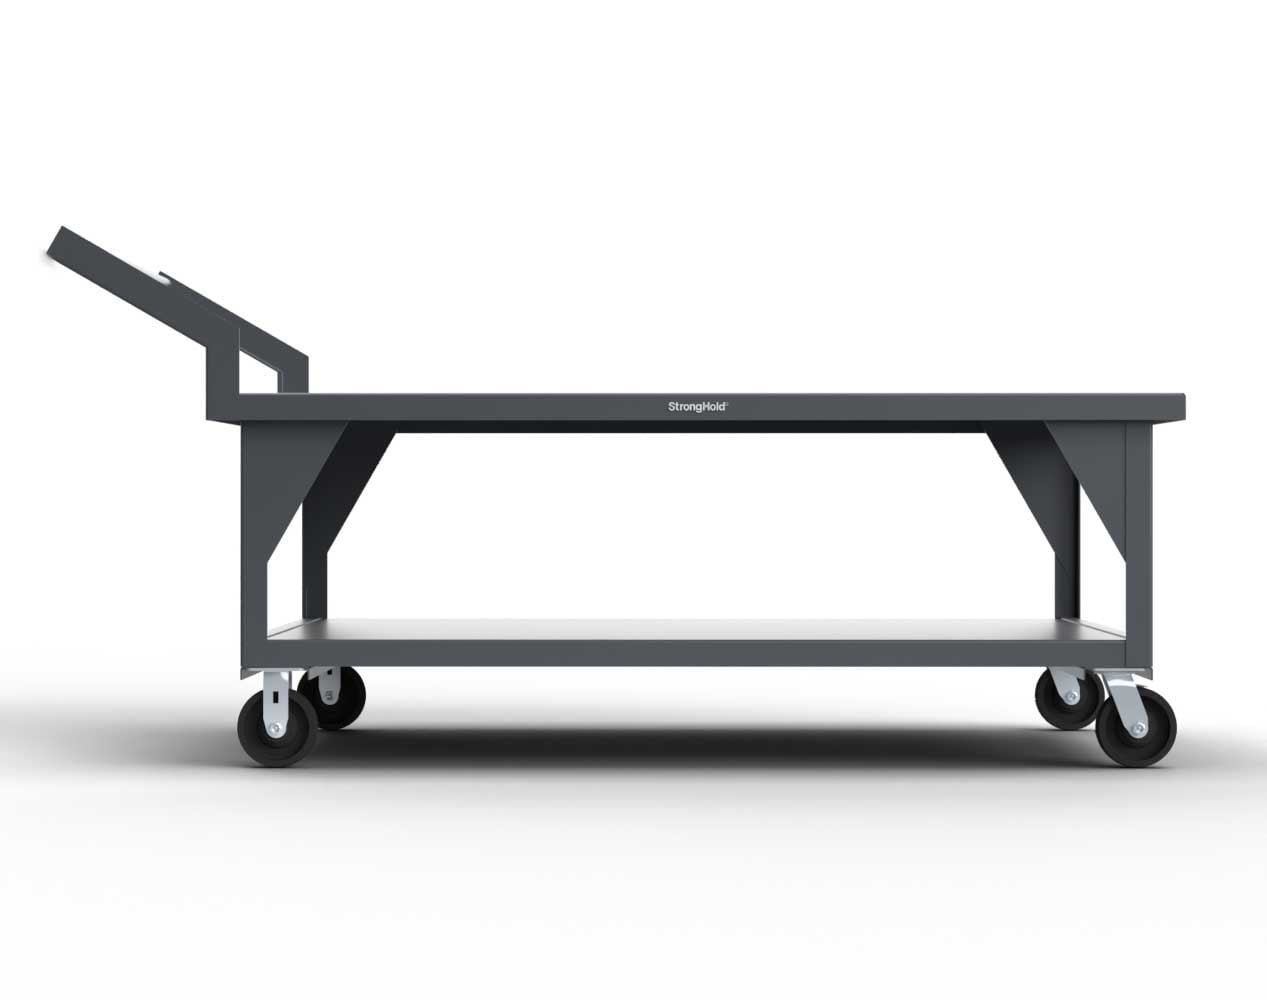 Extra Heavy Duty 7 GA Mobile Shop Table with 1 Shelf  – 72 In. W x 52 In. D x 38 In. H